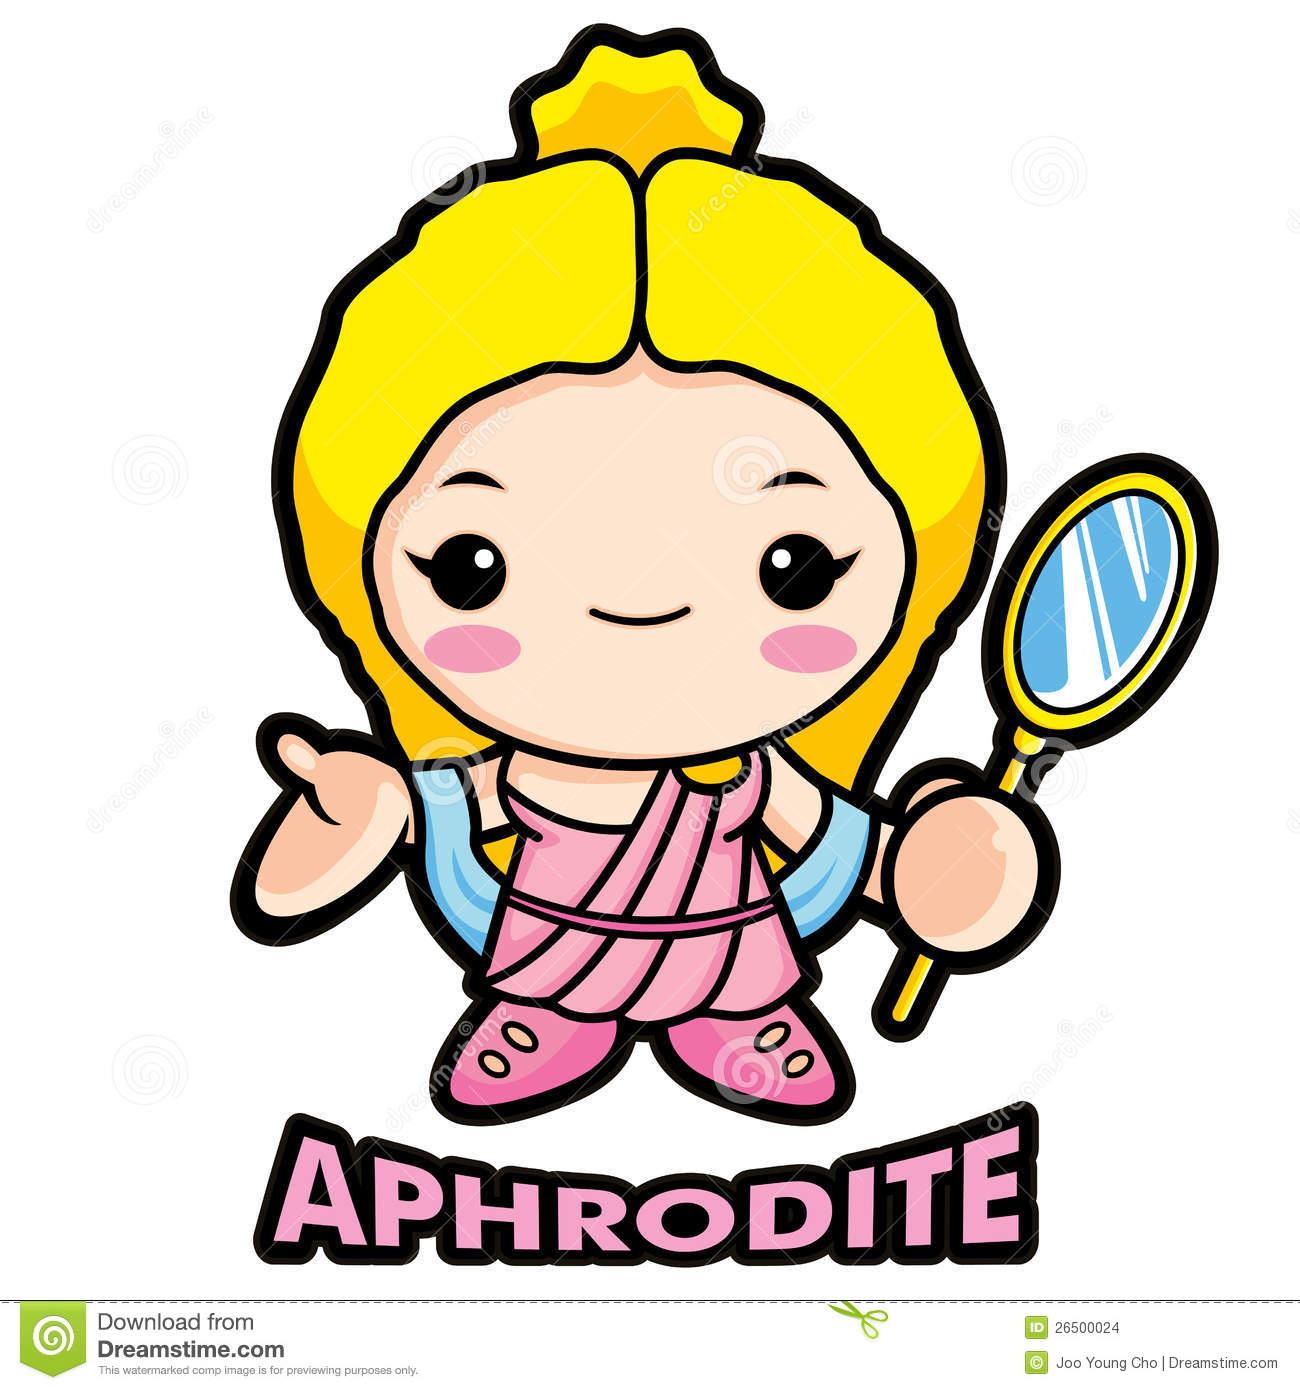 Hera Greek Goddess Cartoon Aphrodite greek god symbol